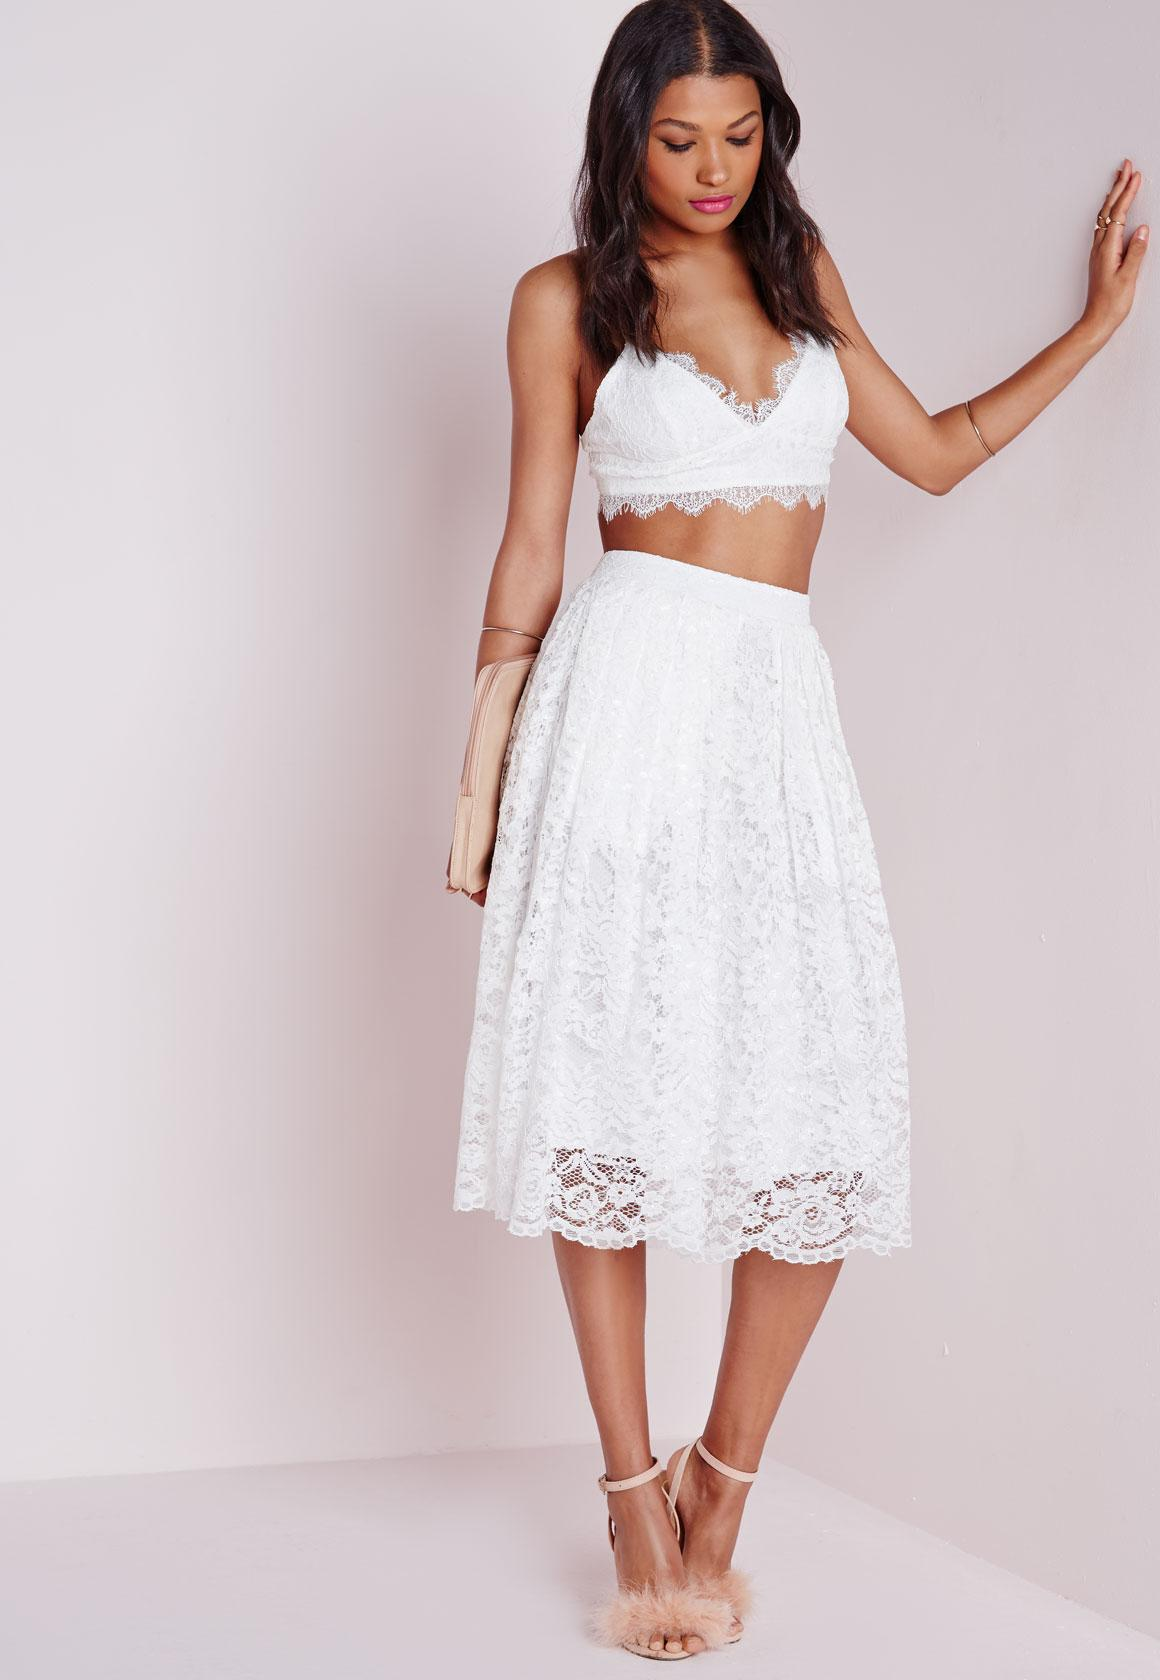 Lace dress with skirt full